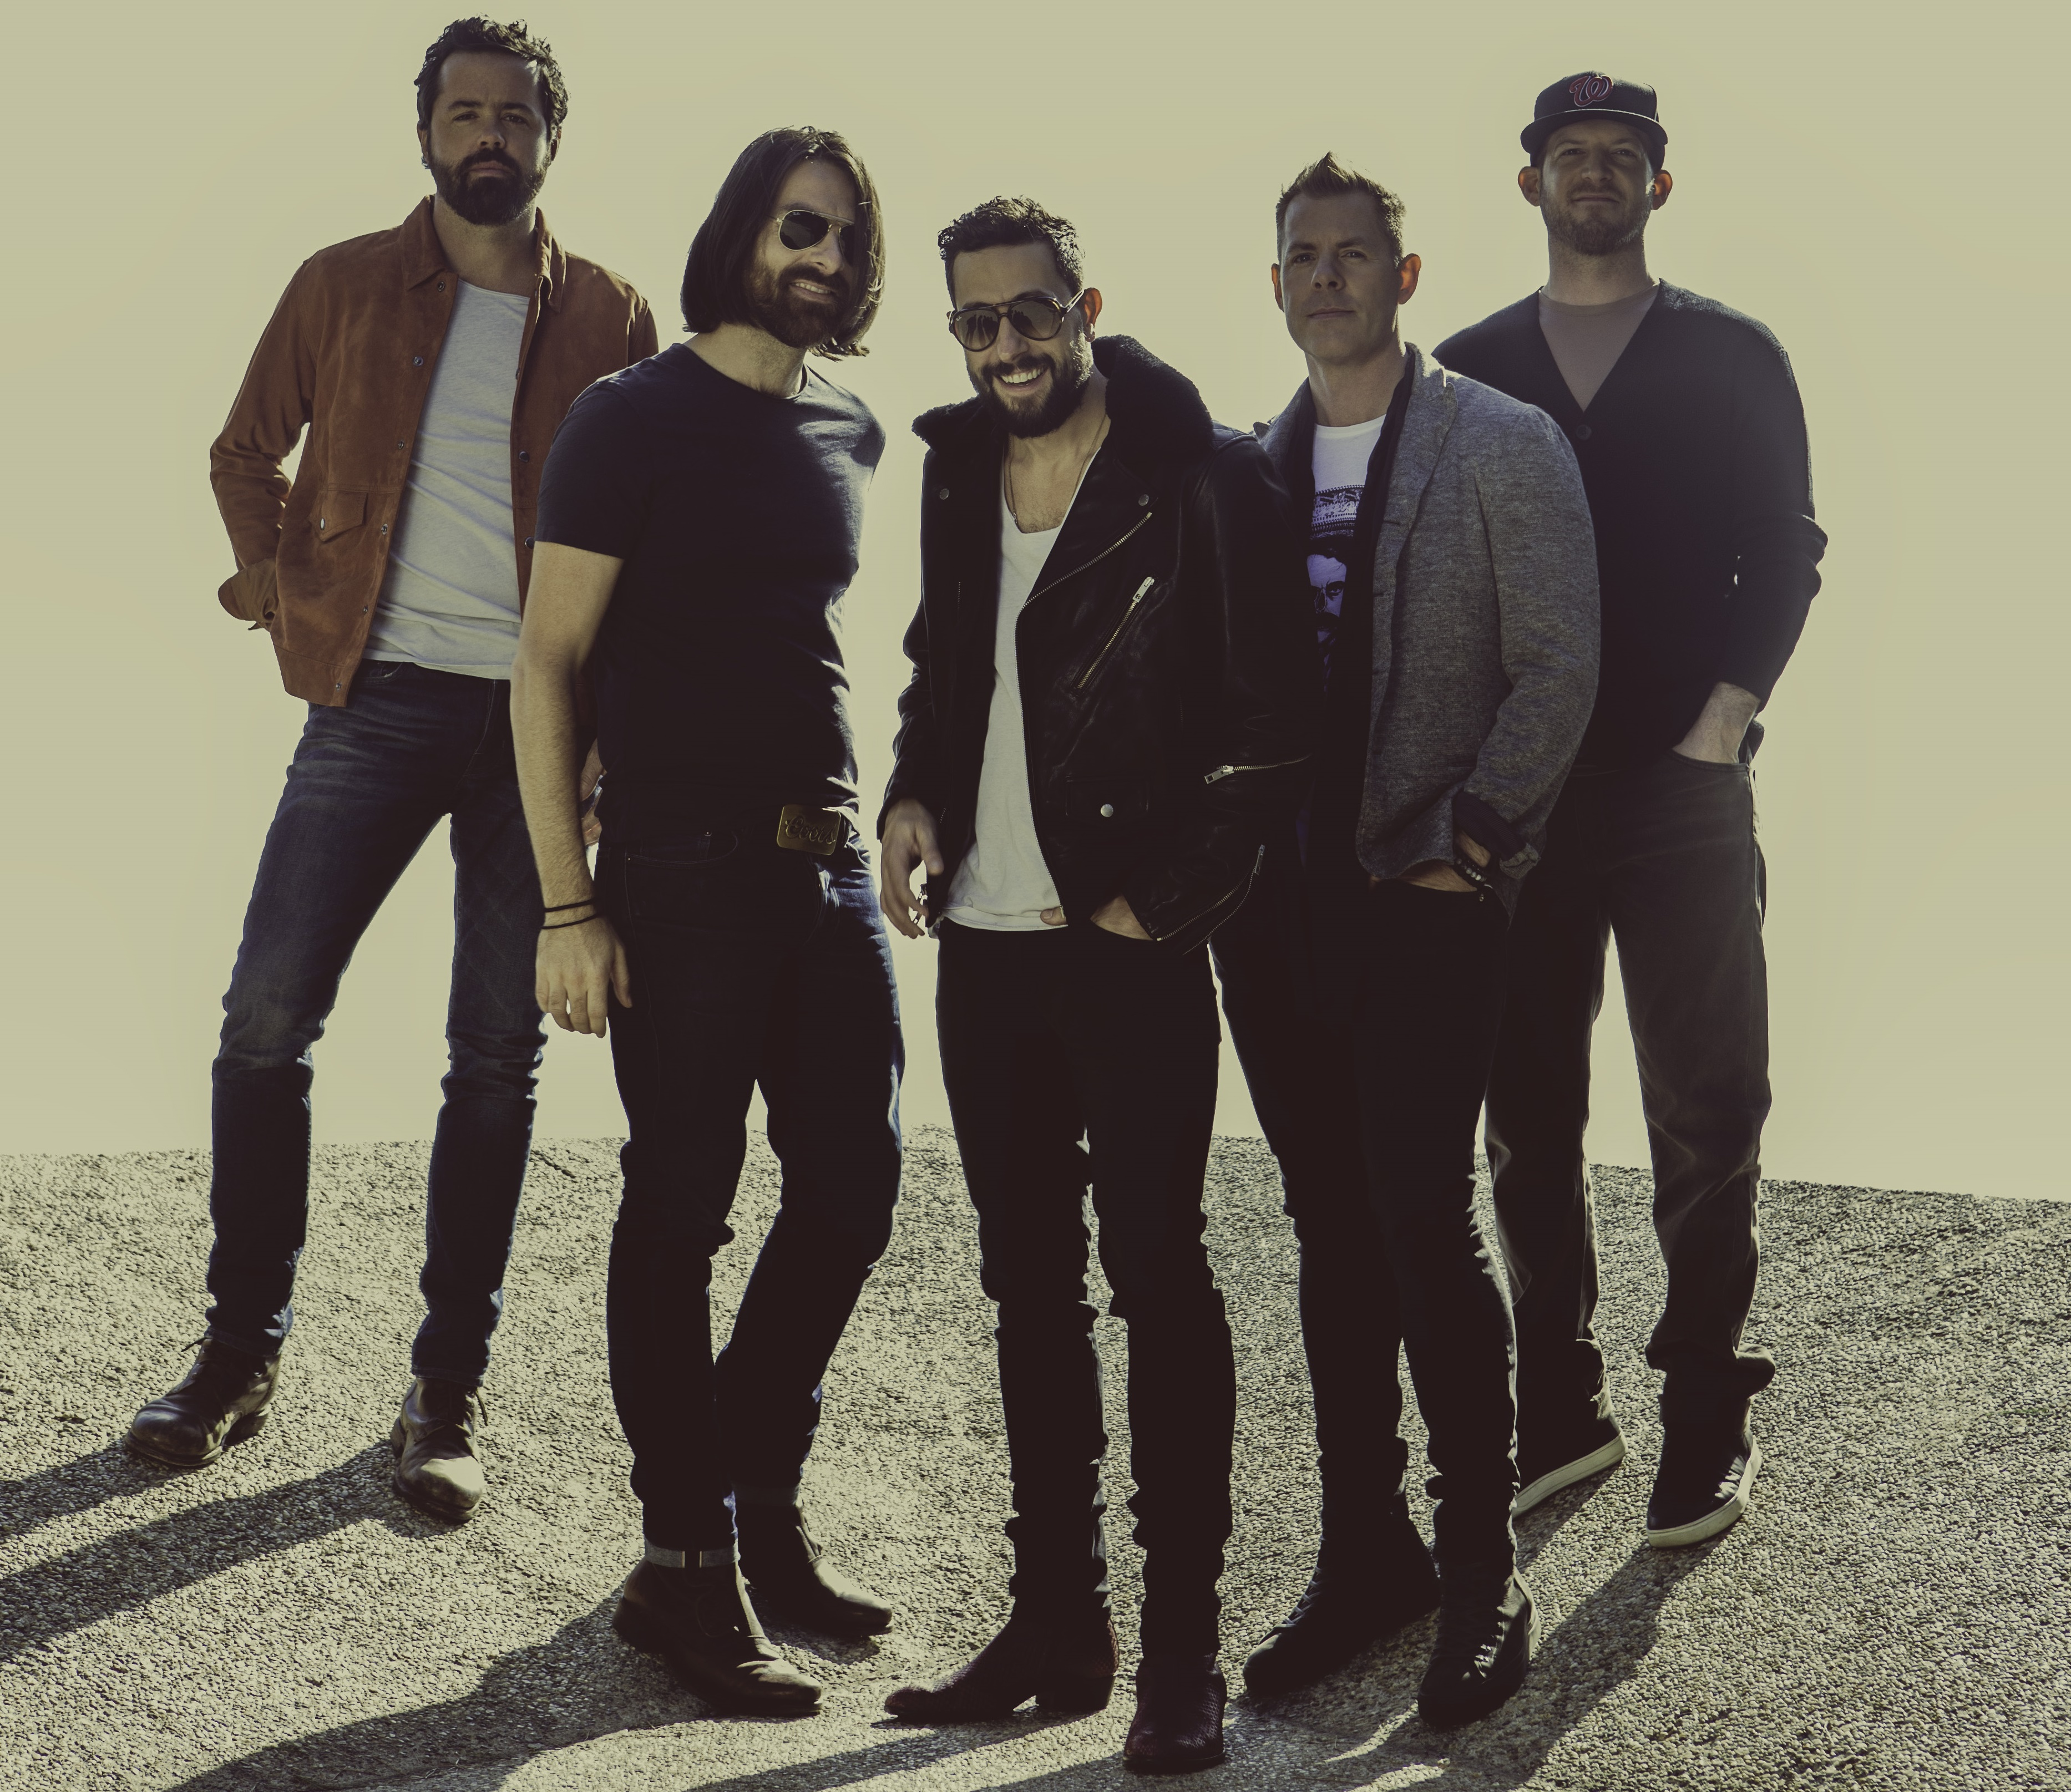 WIN a Copy of Old Dominion's New Album, 'Happy Endings'